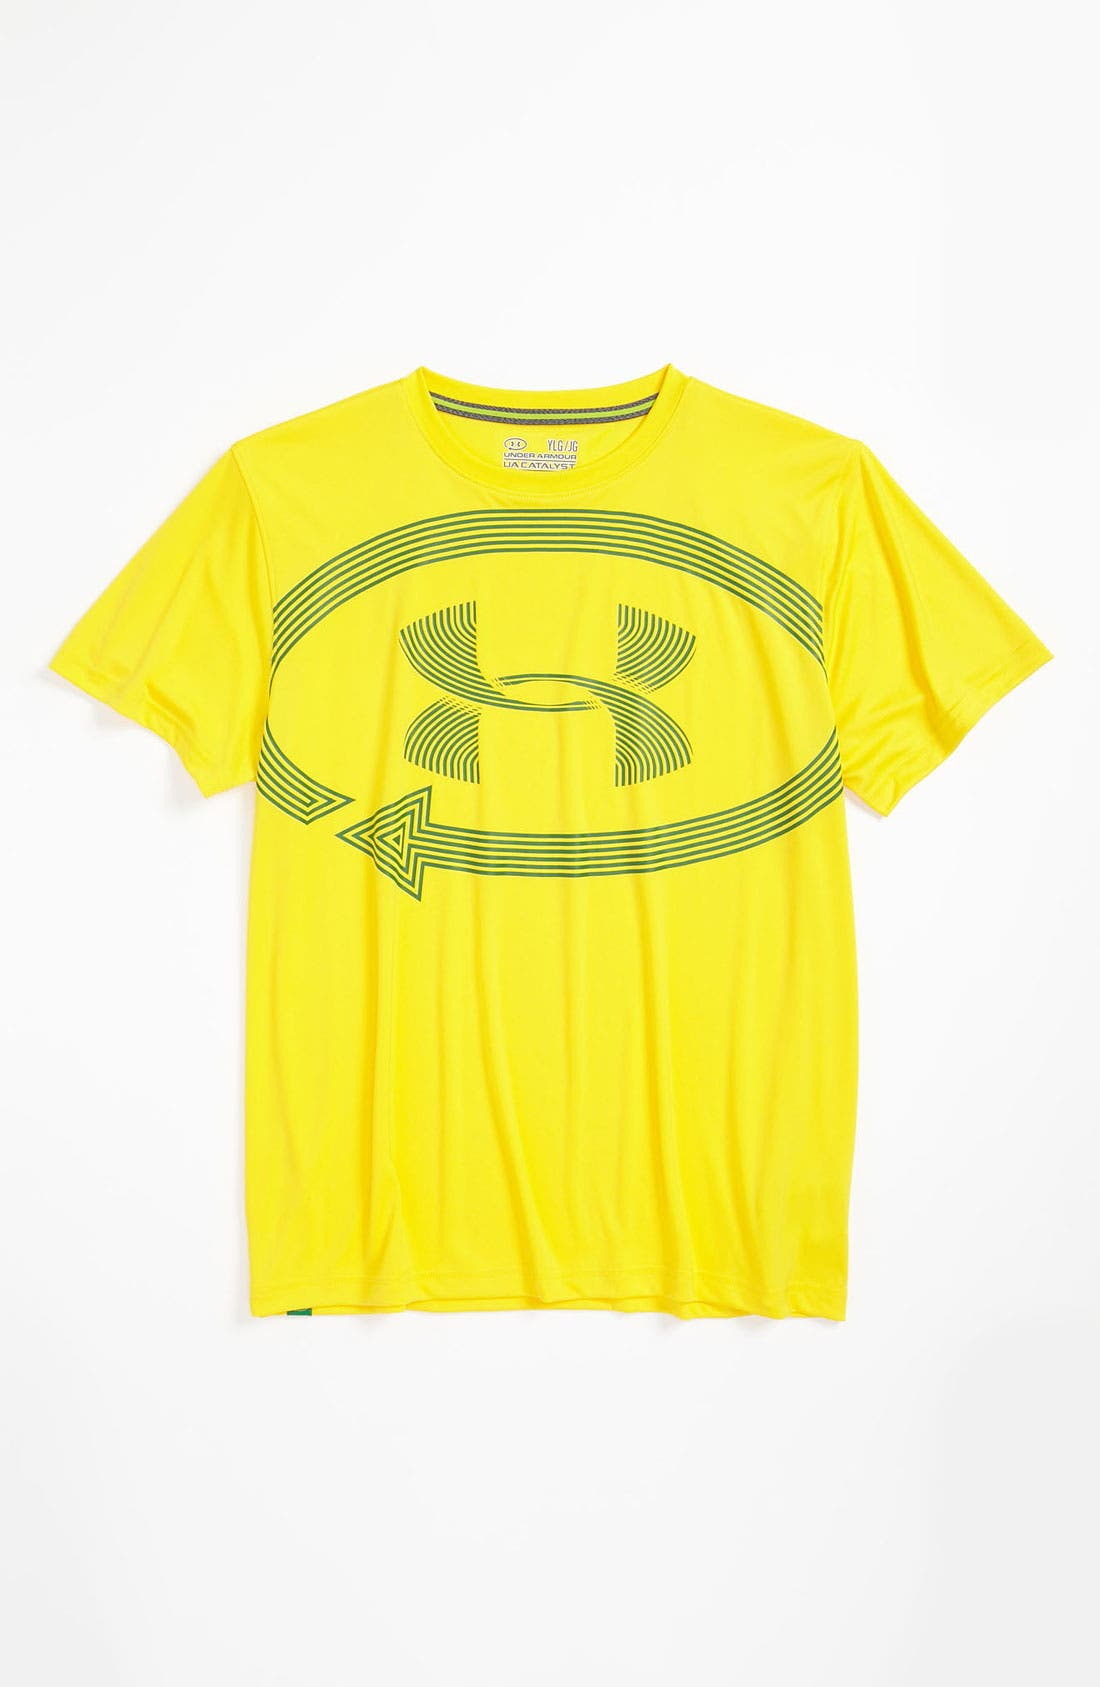 Main Image - Under Armour 'Catalyst' T-Shirt (Big Boys)